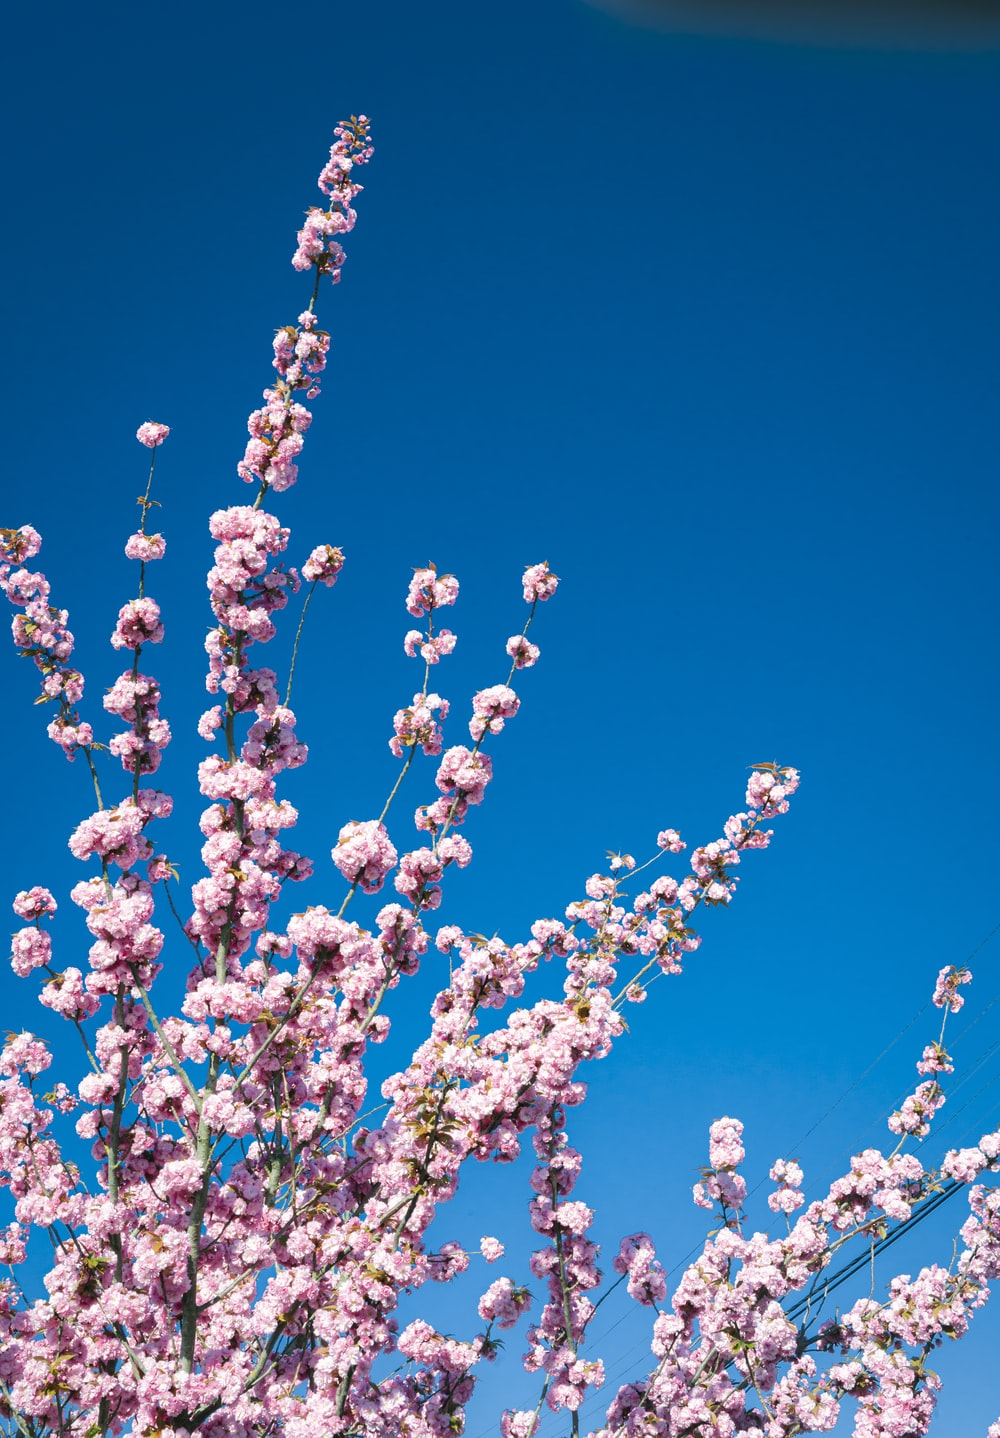 white and pink flower under blue sky during daytime